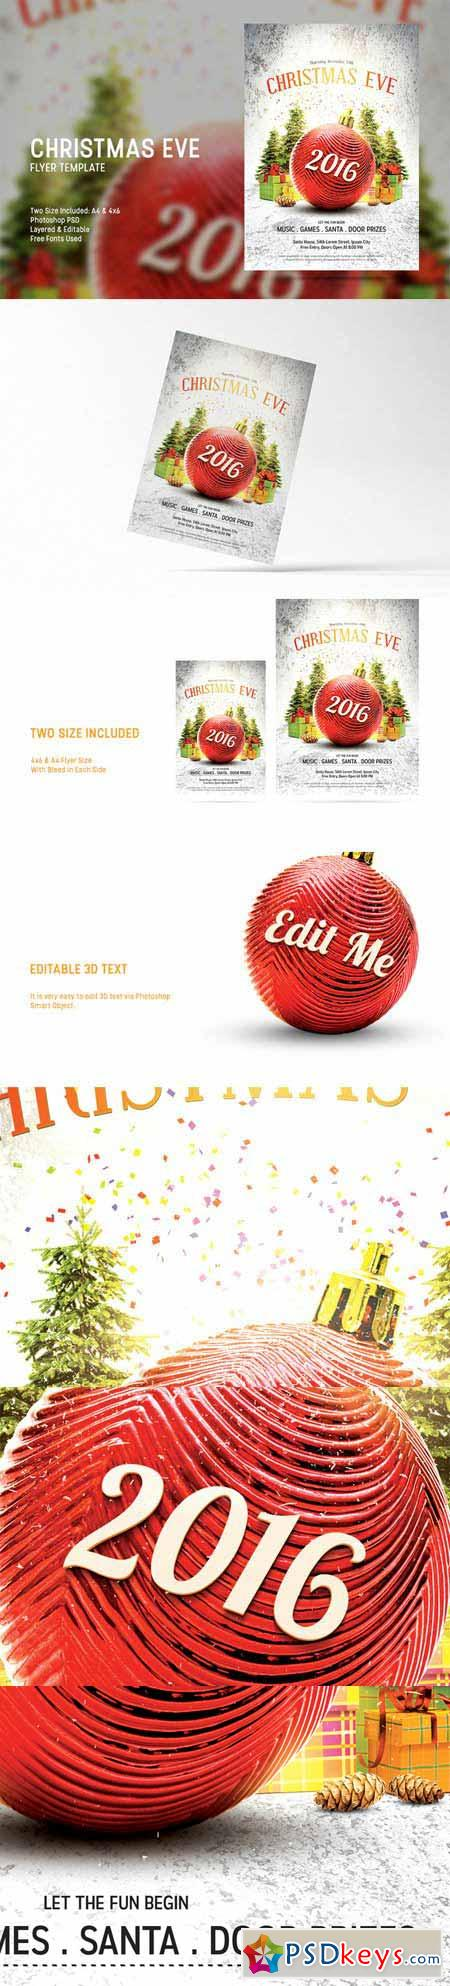 Christmas Eve Flyer Template 437515